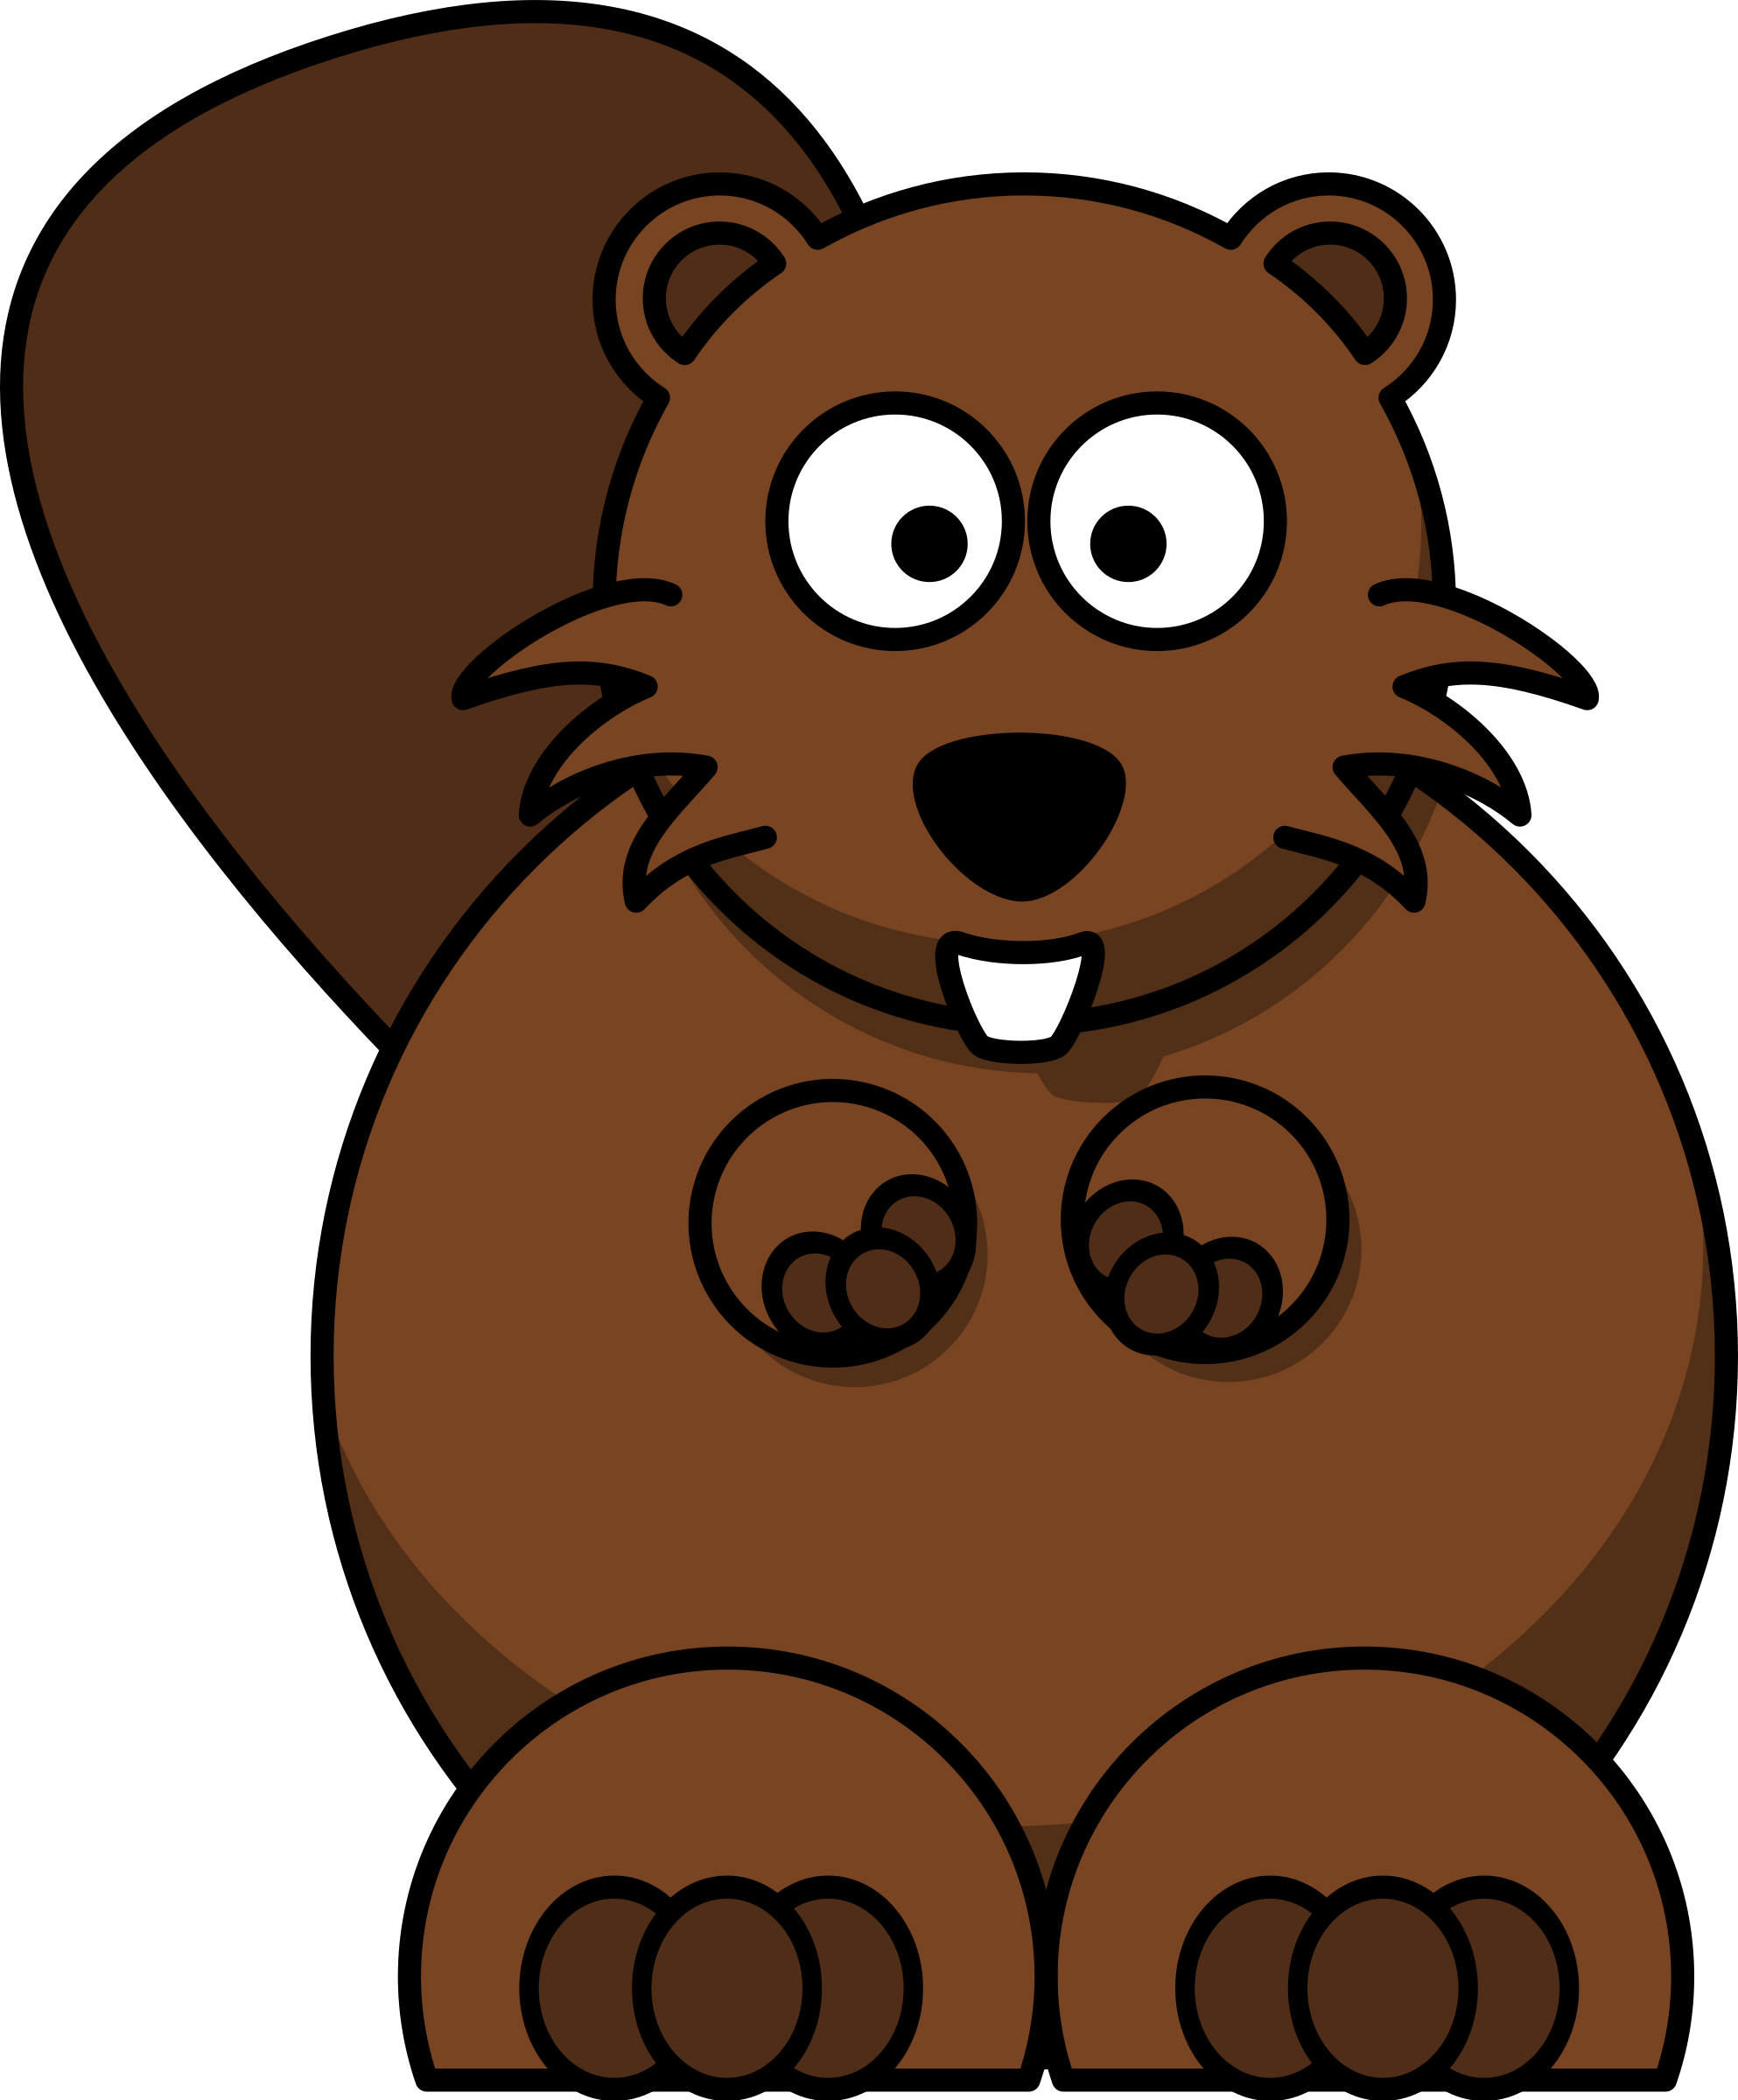 Cartoon beaver by lemmling